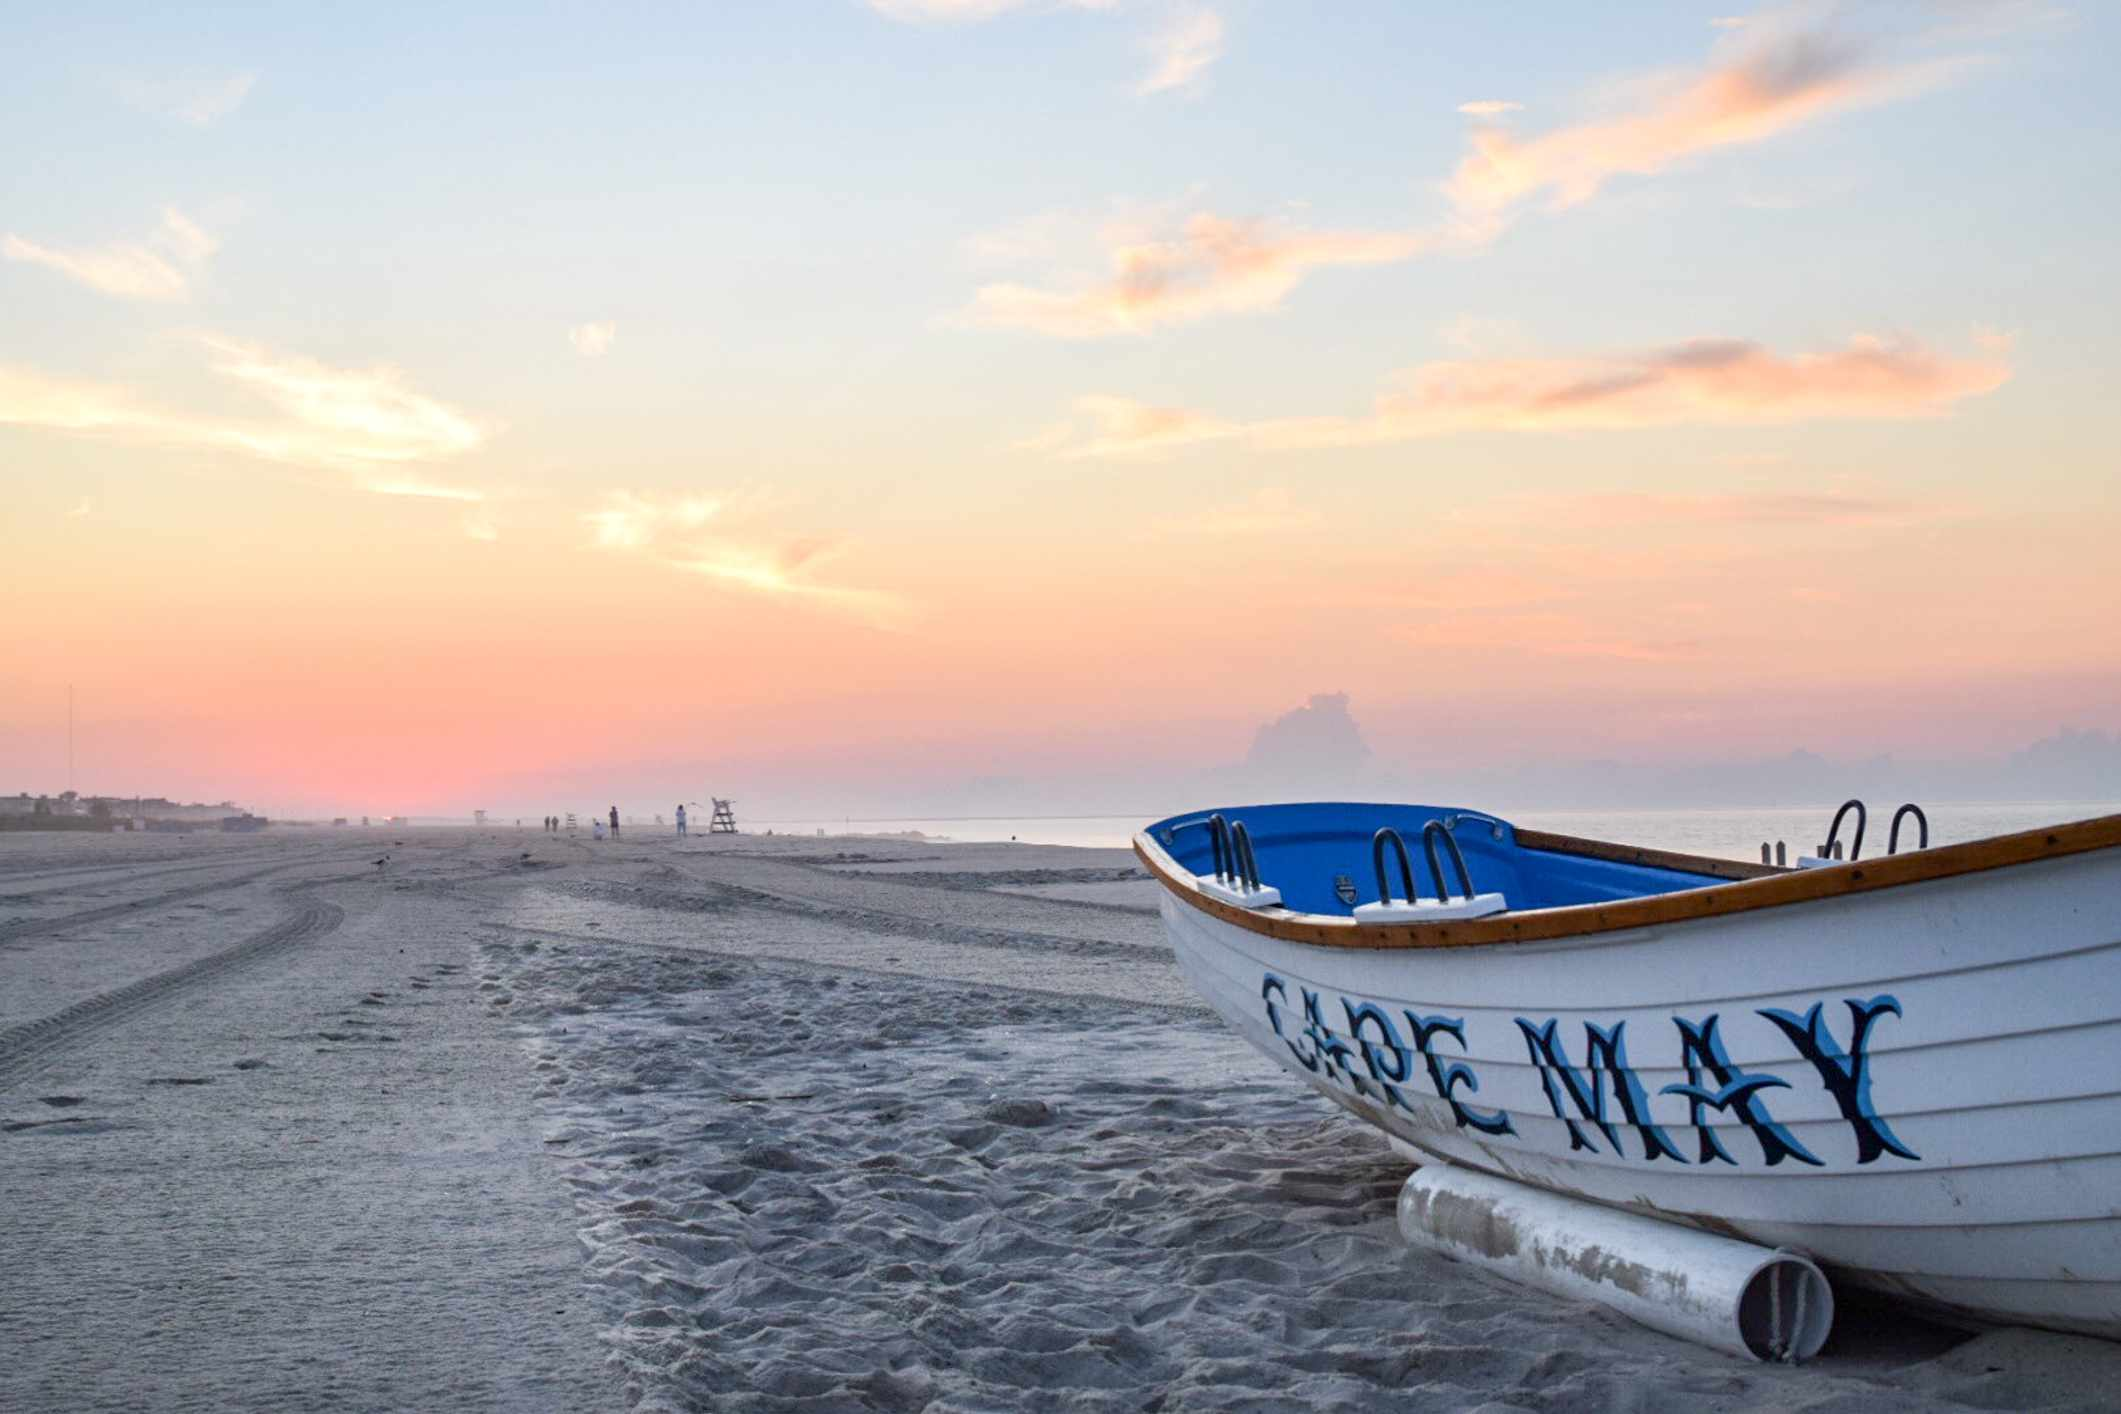 A boat with Cape May written on it on the beach